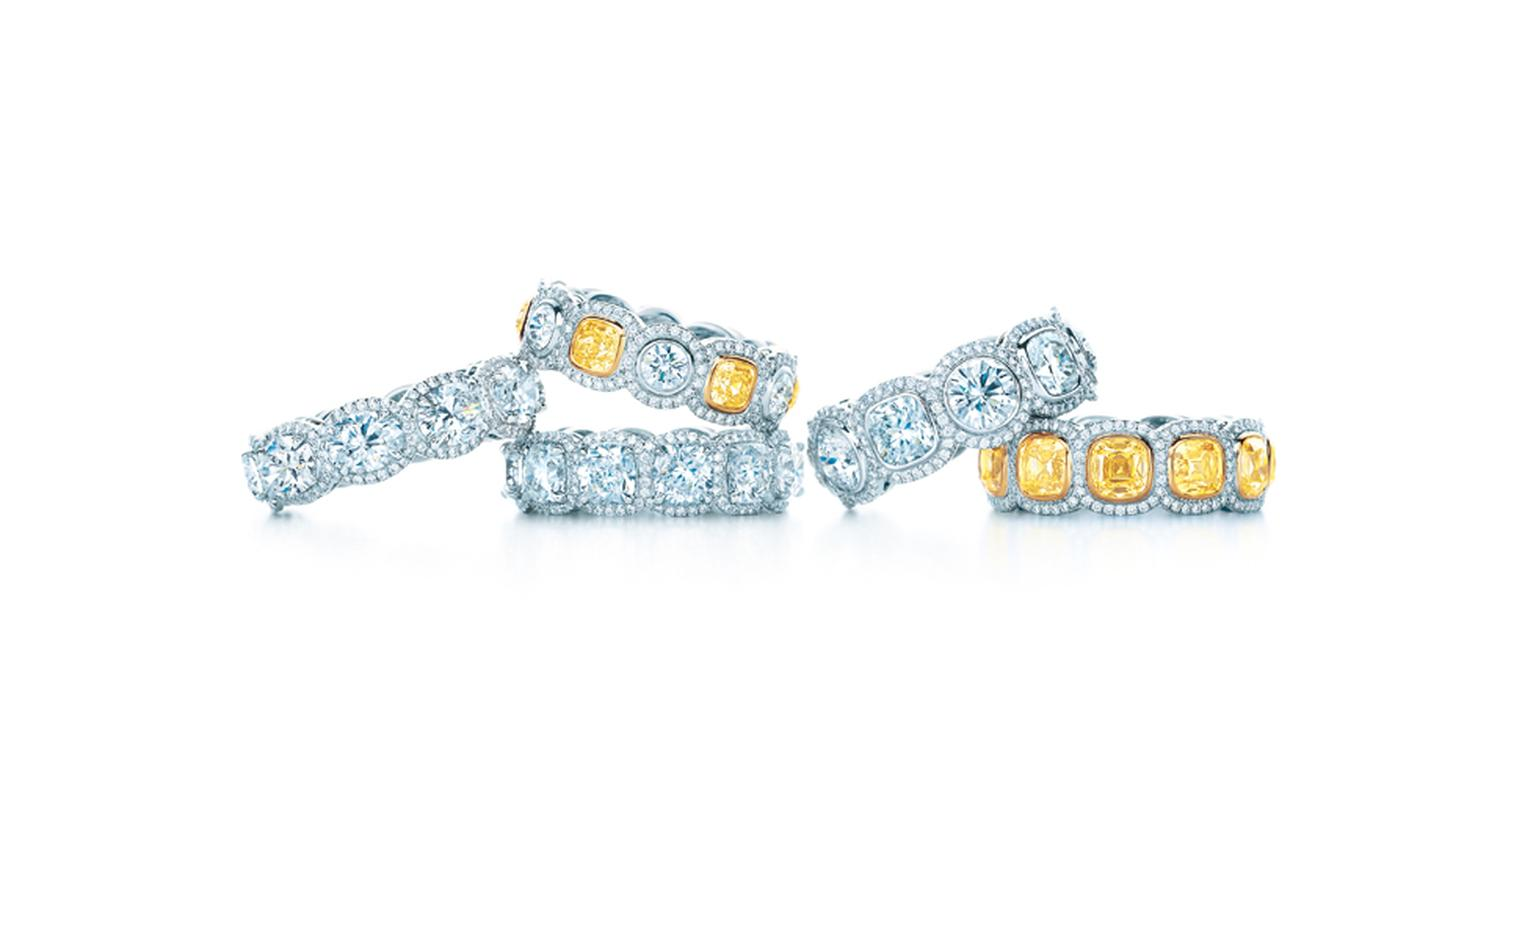 Tiffany & Co yellow and white diamond band rings:  £41,700, £19,700, £34,100, £49,300, £39,500